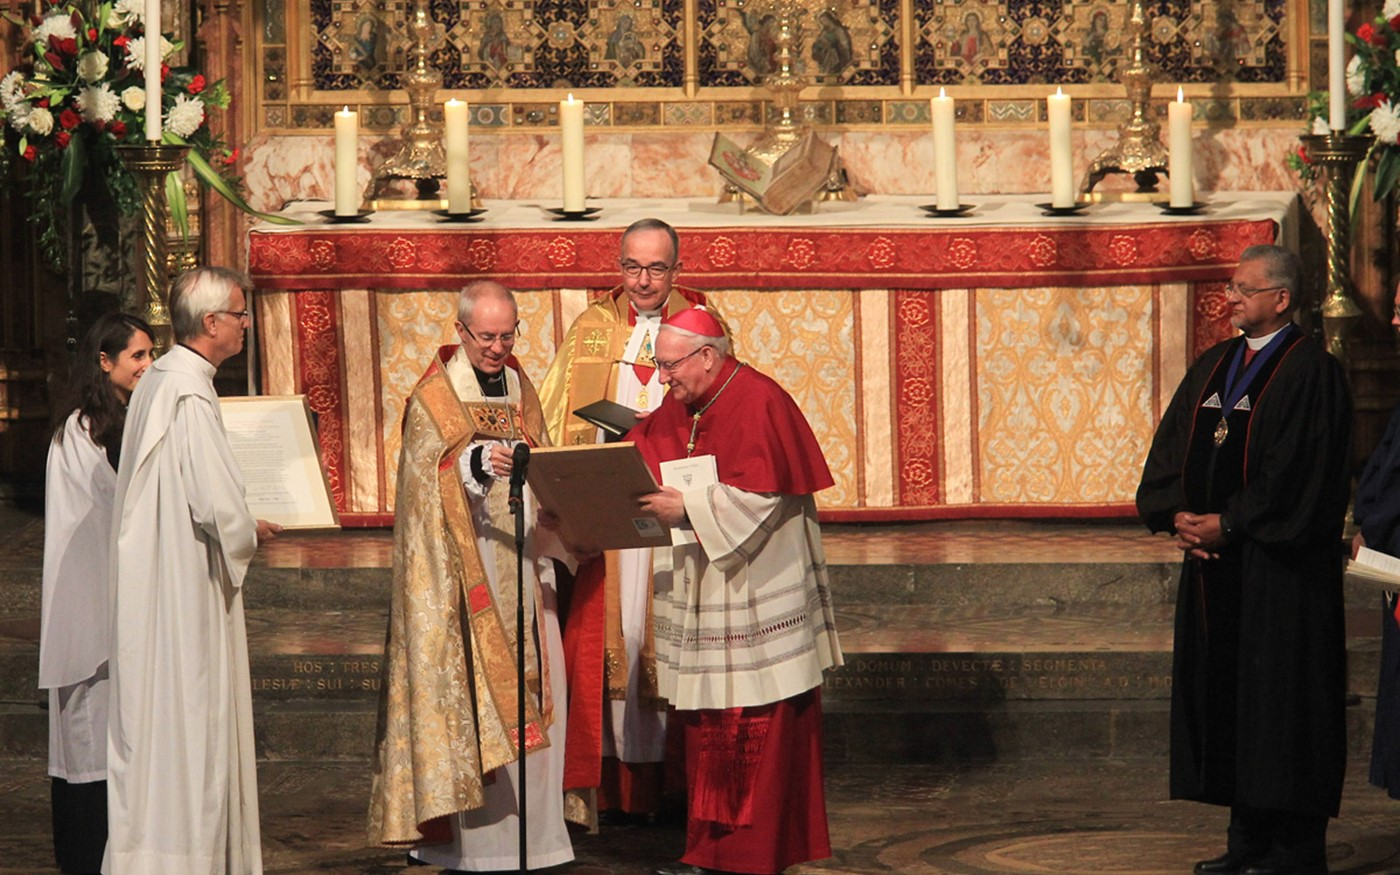 The Archbishop of Canterbury acknowledges the Anglican Communion's affirmation of the Joint Declaration on the Doctrine of Justification between the Lutheran and Roman Catholic Churches